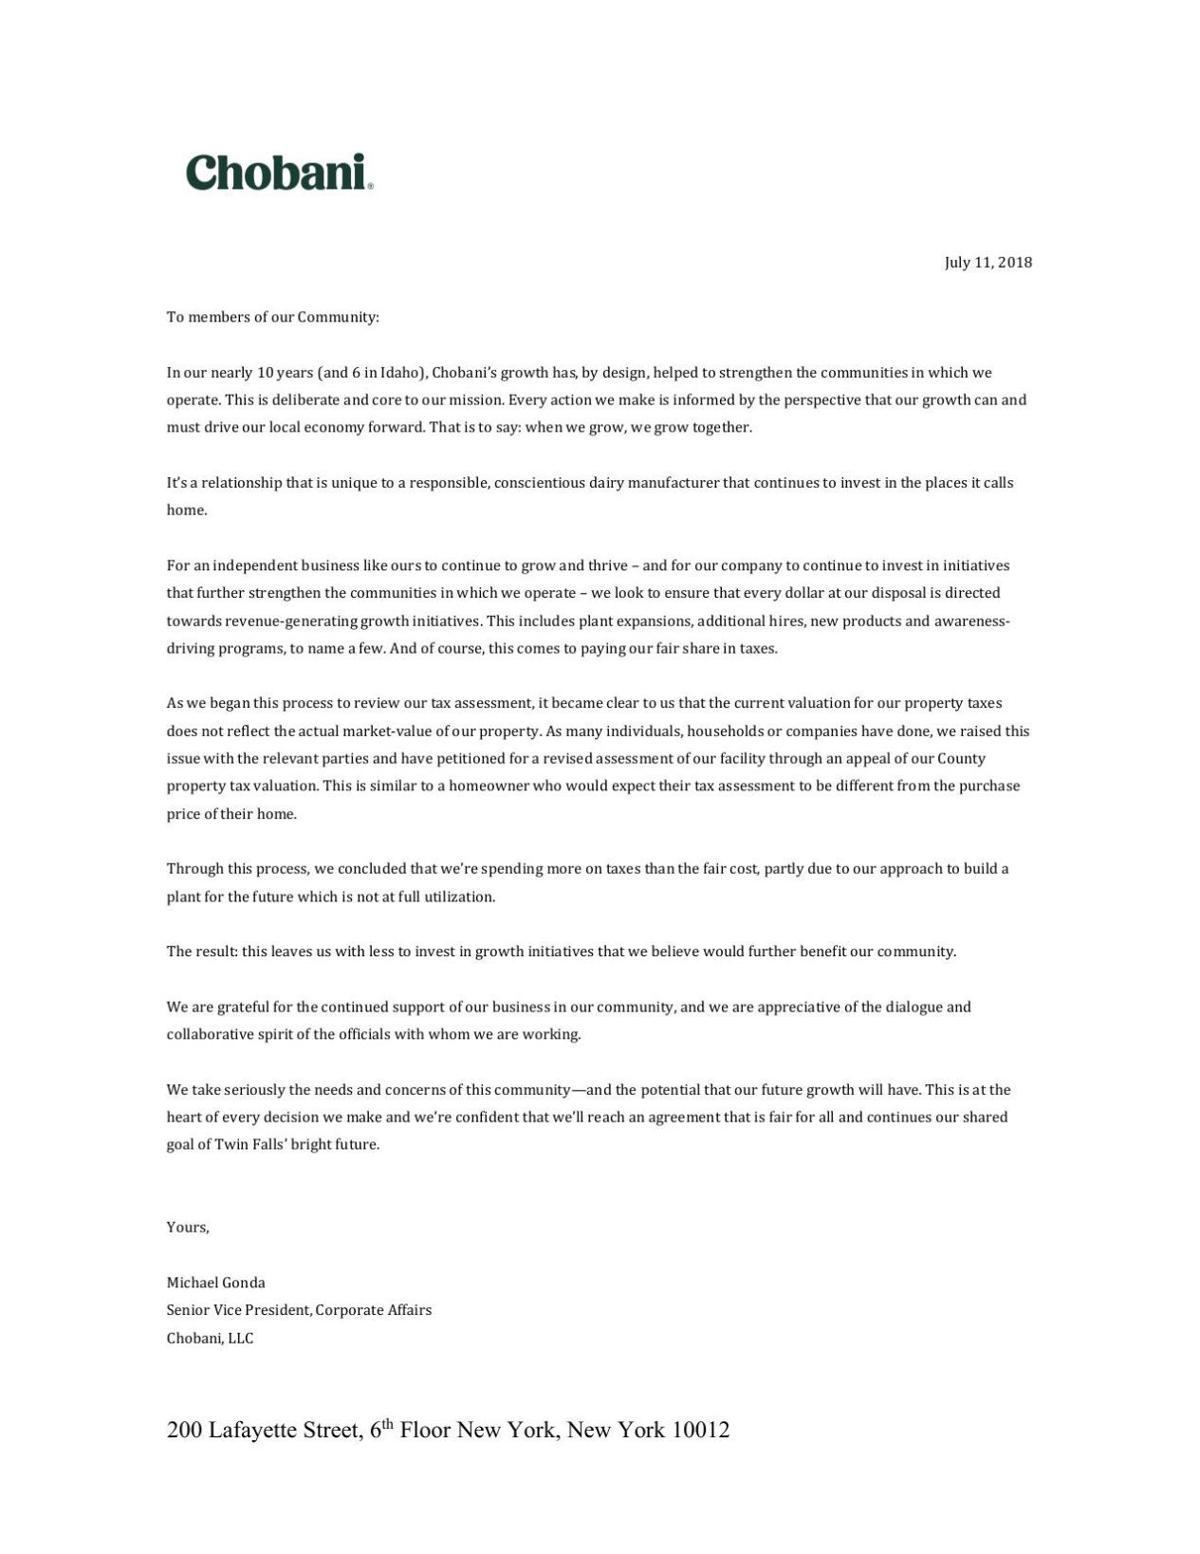 Chobani letter to the community